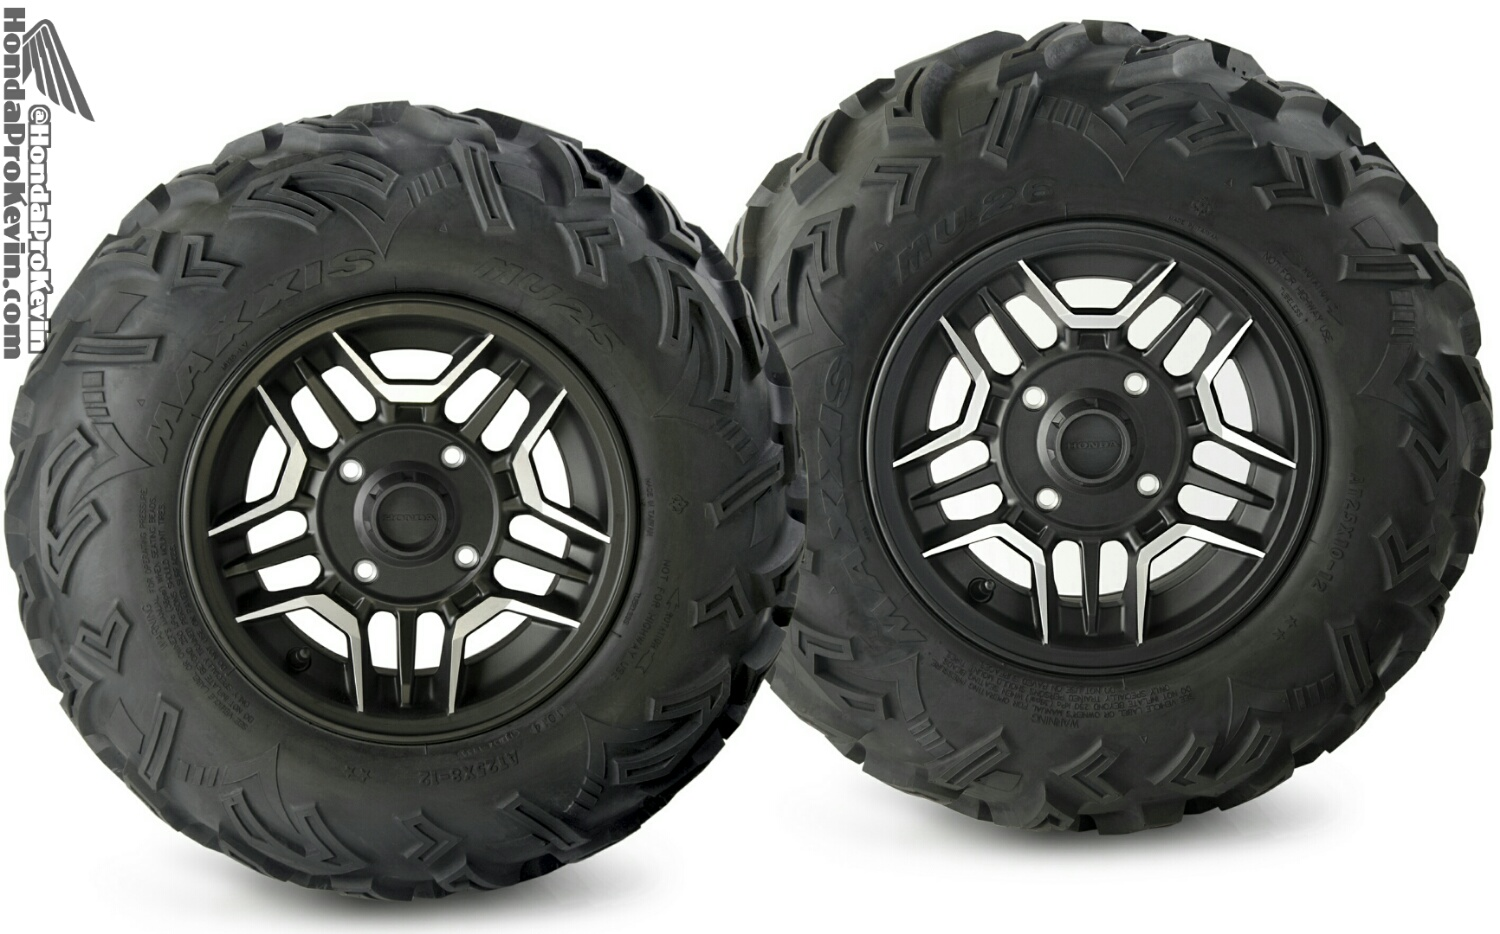 2016 Honda Rubicon 500 ATV Wheels & Tires - Review / Specs / Price / HP & TQ Performance Rating